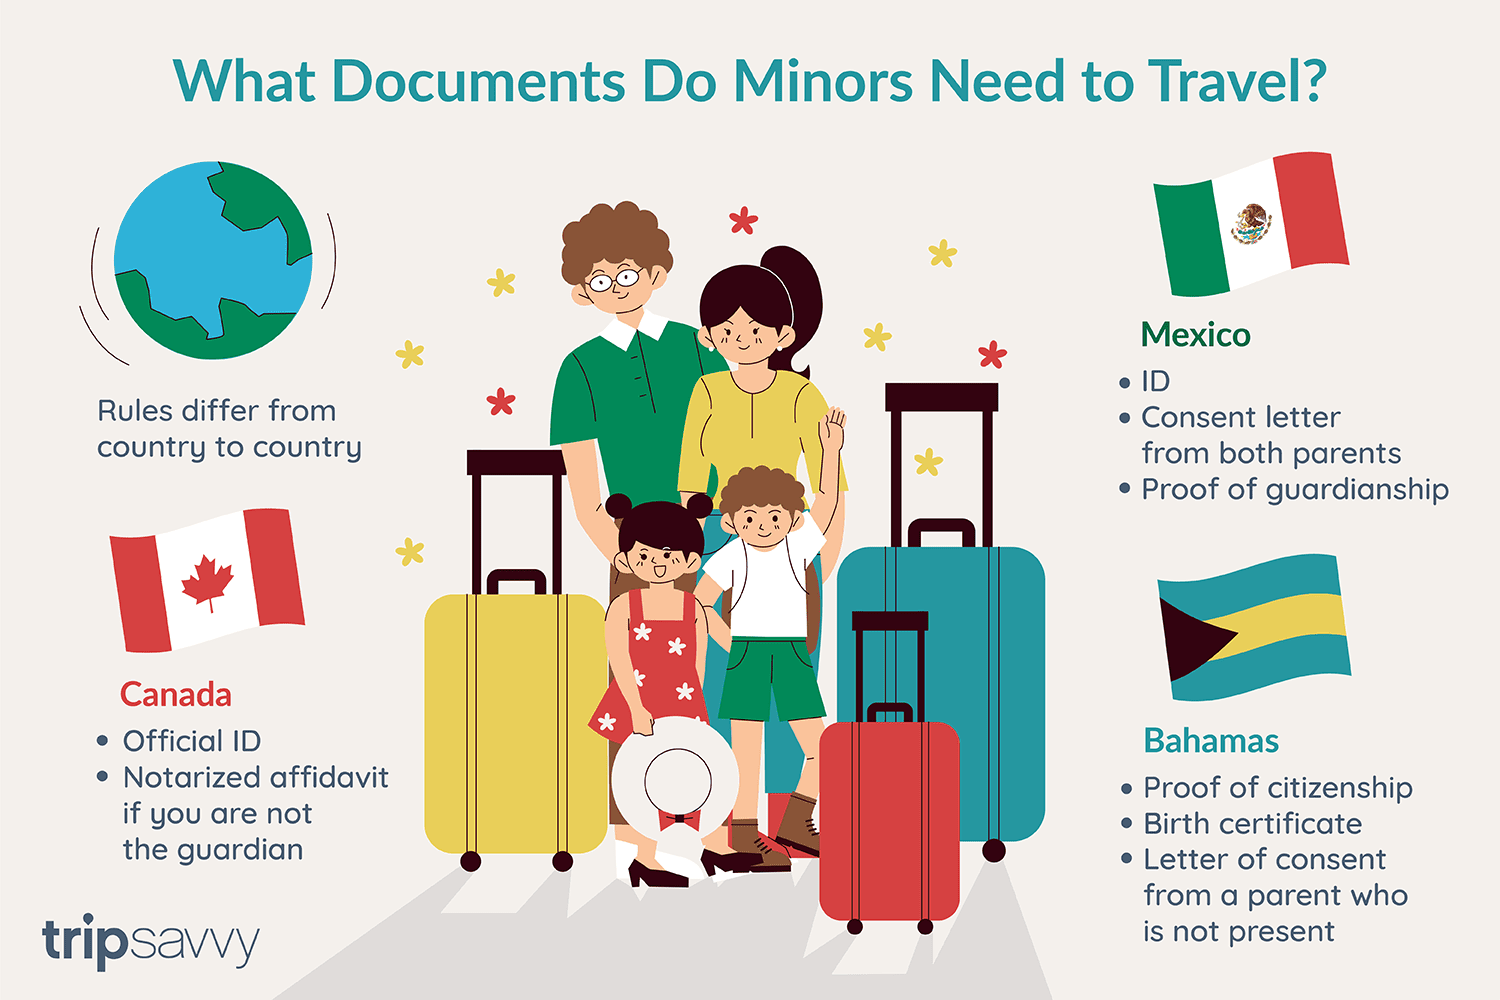 Required Documents for International Travel With Minors